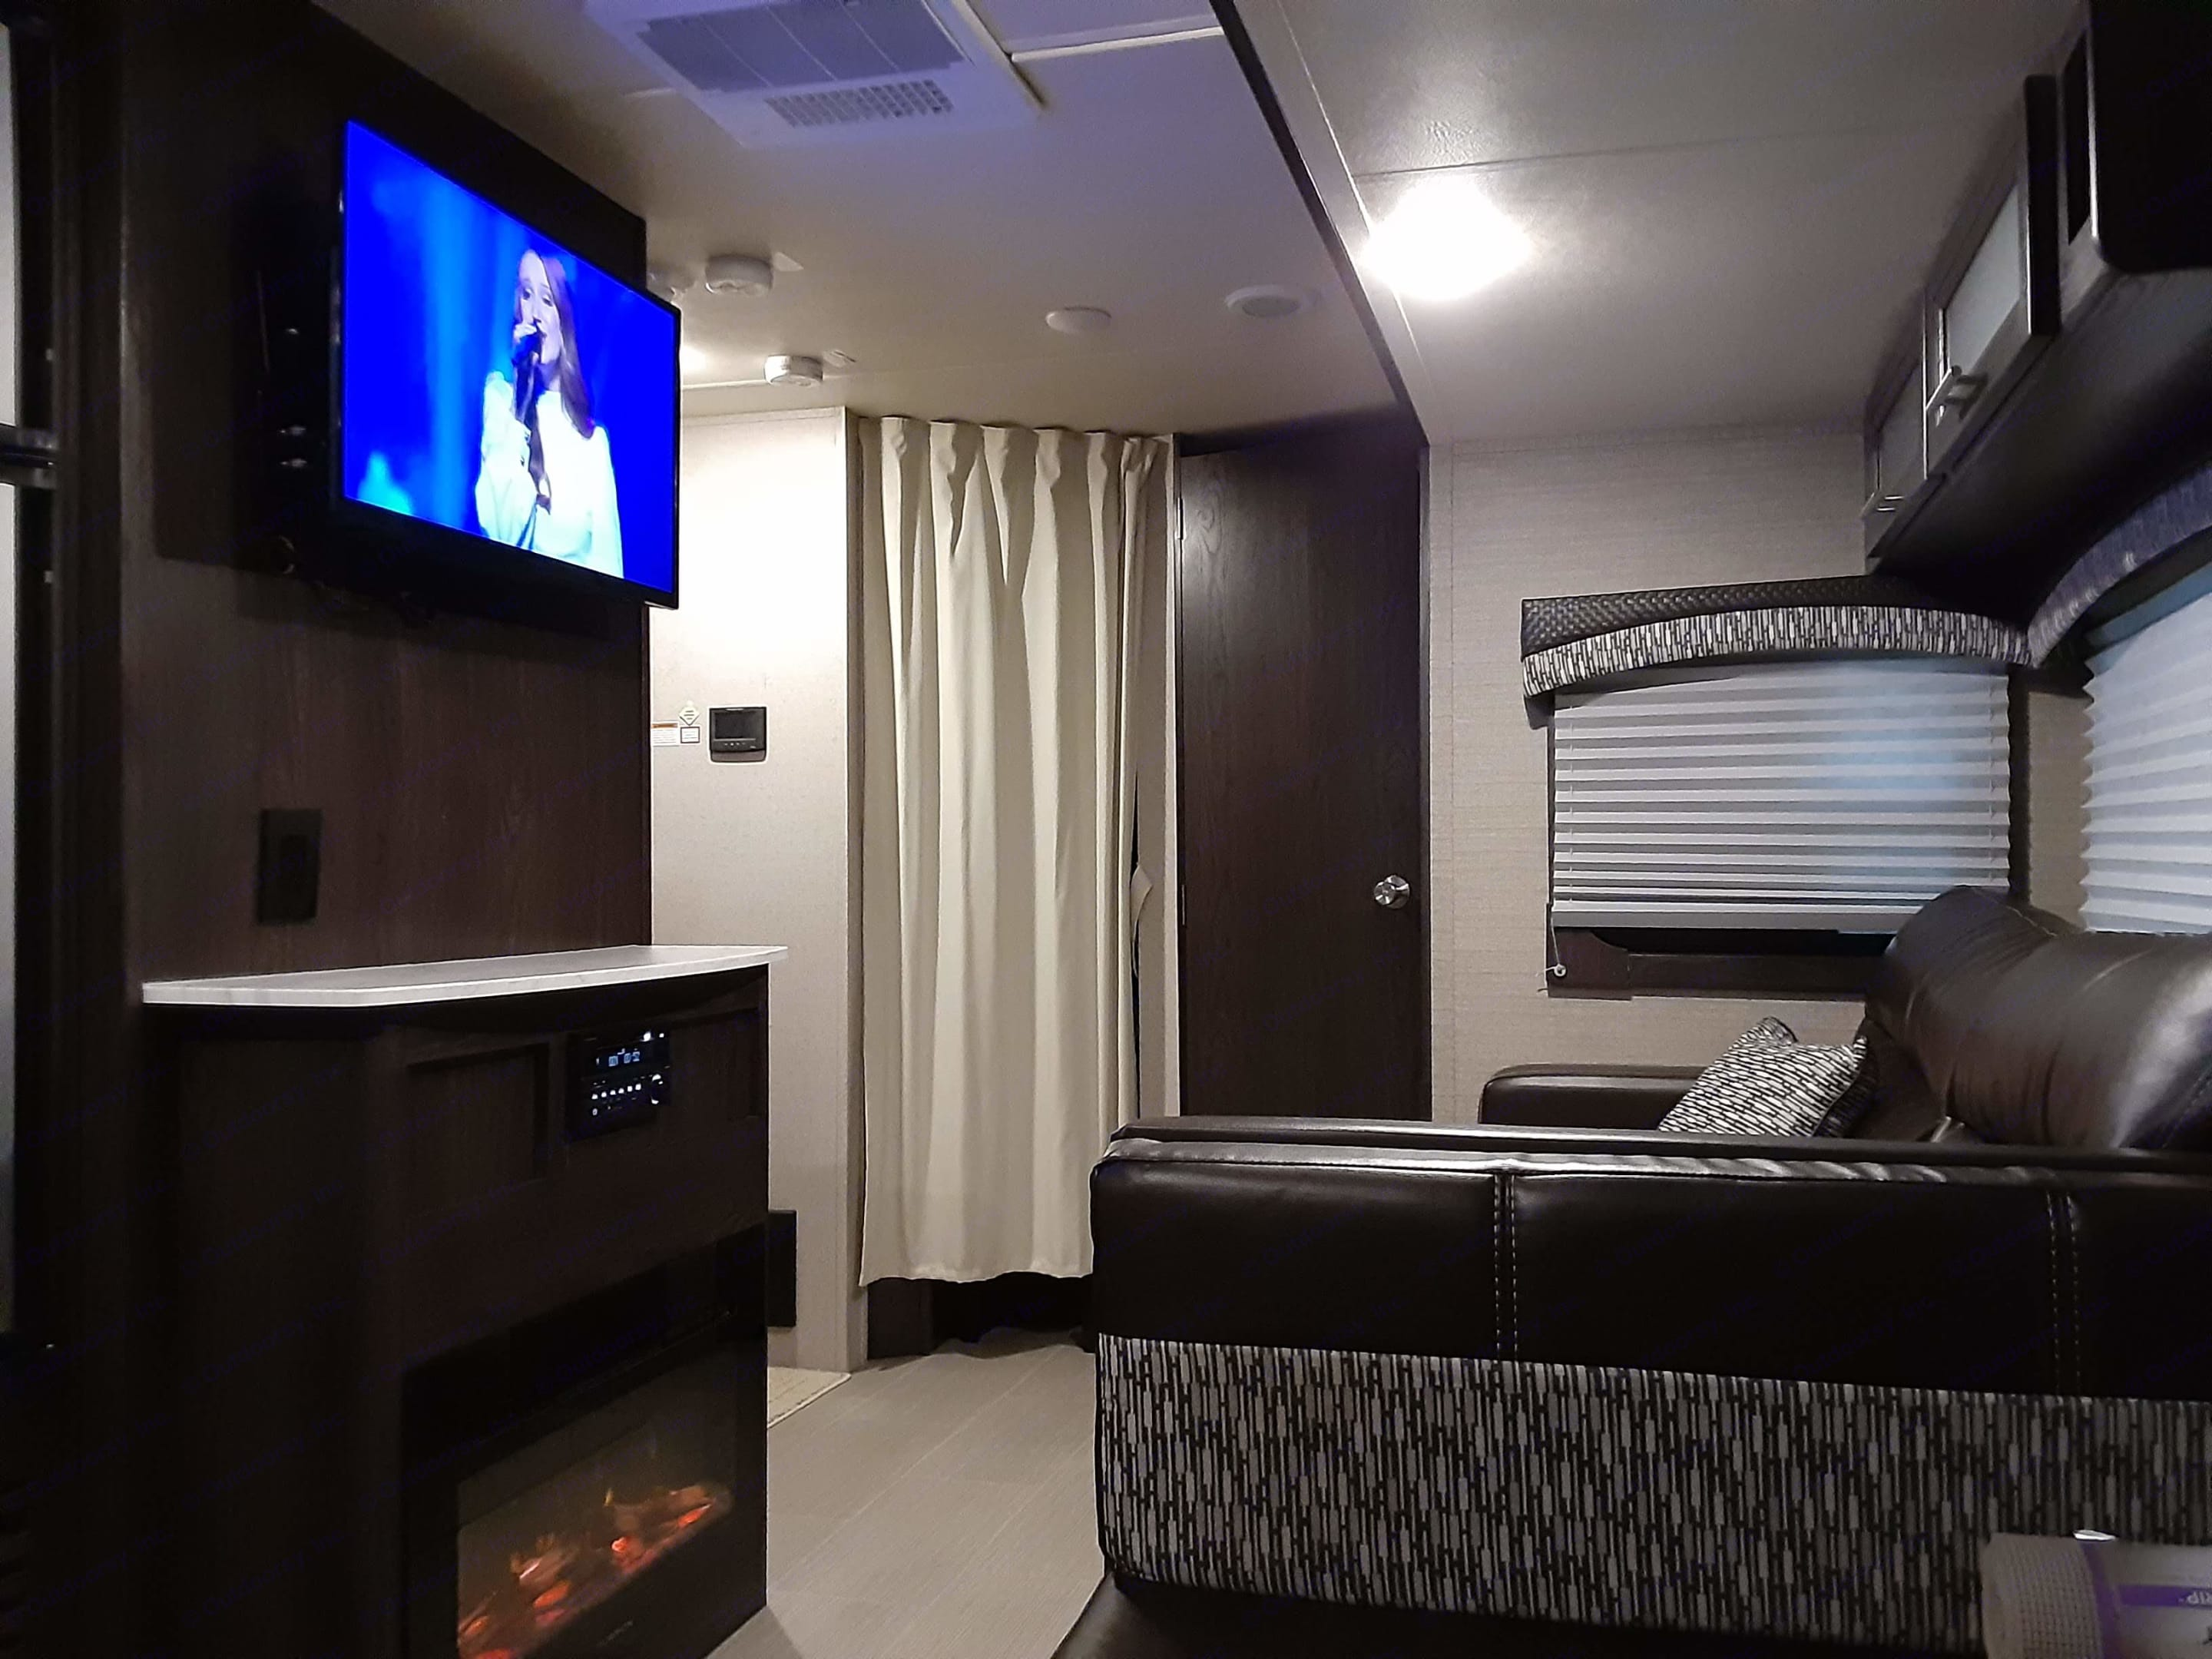 Relax by catching up on the news, watching an evening video, or just enjoying the glow of the electric fireplace, which is great for a chilly morning. Dutchmen Kodiak 2018